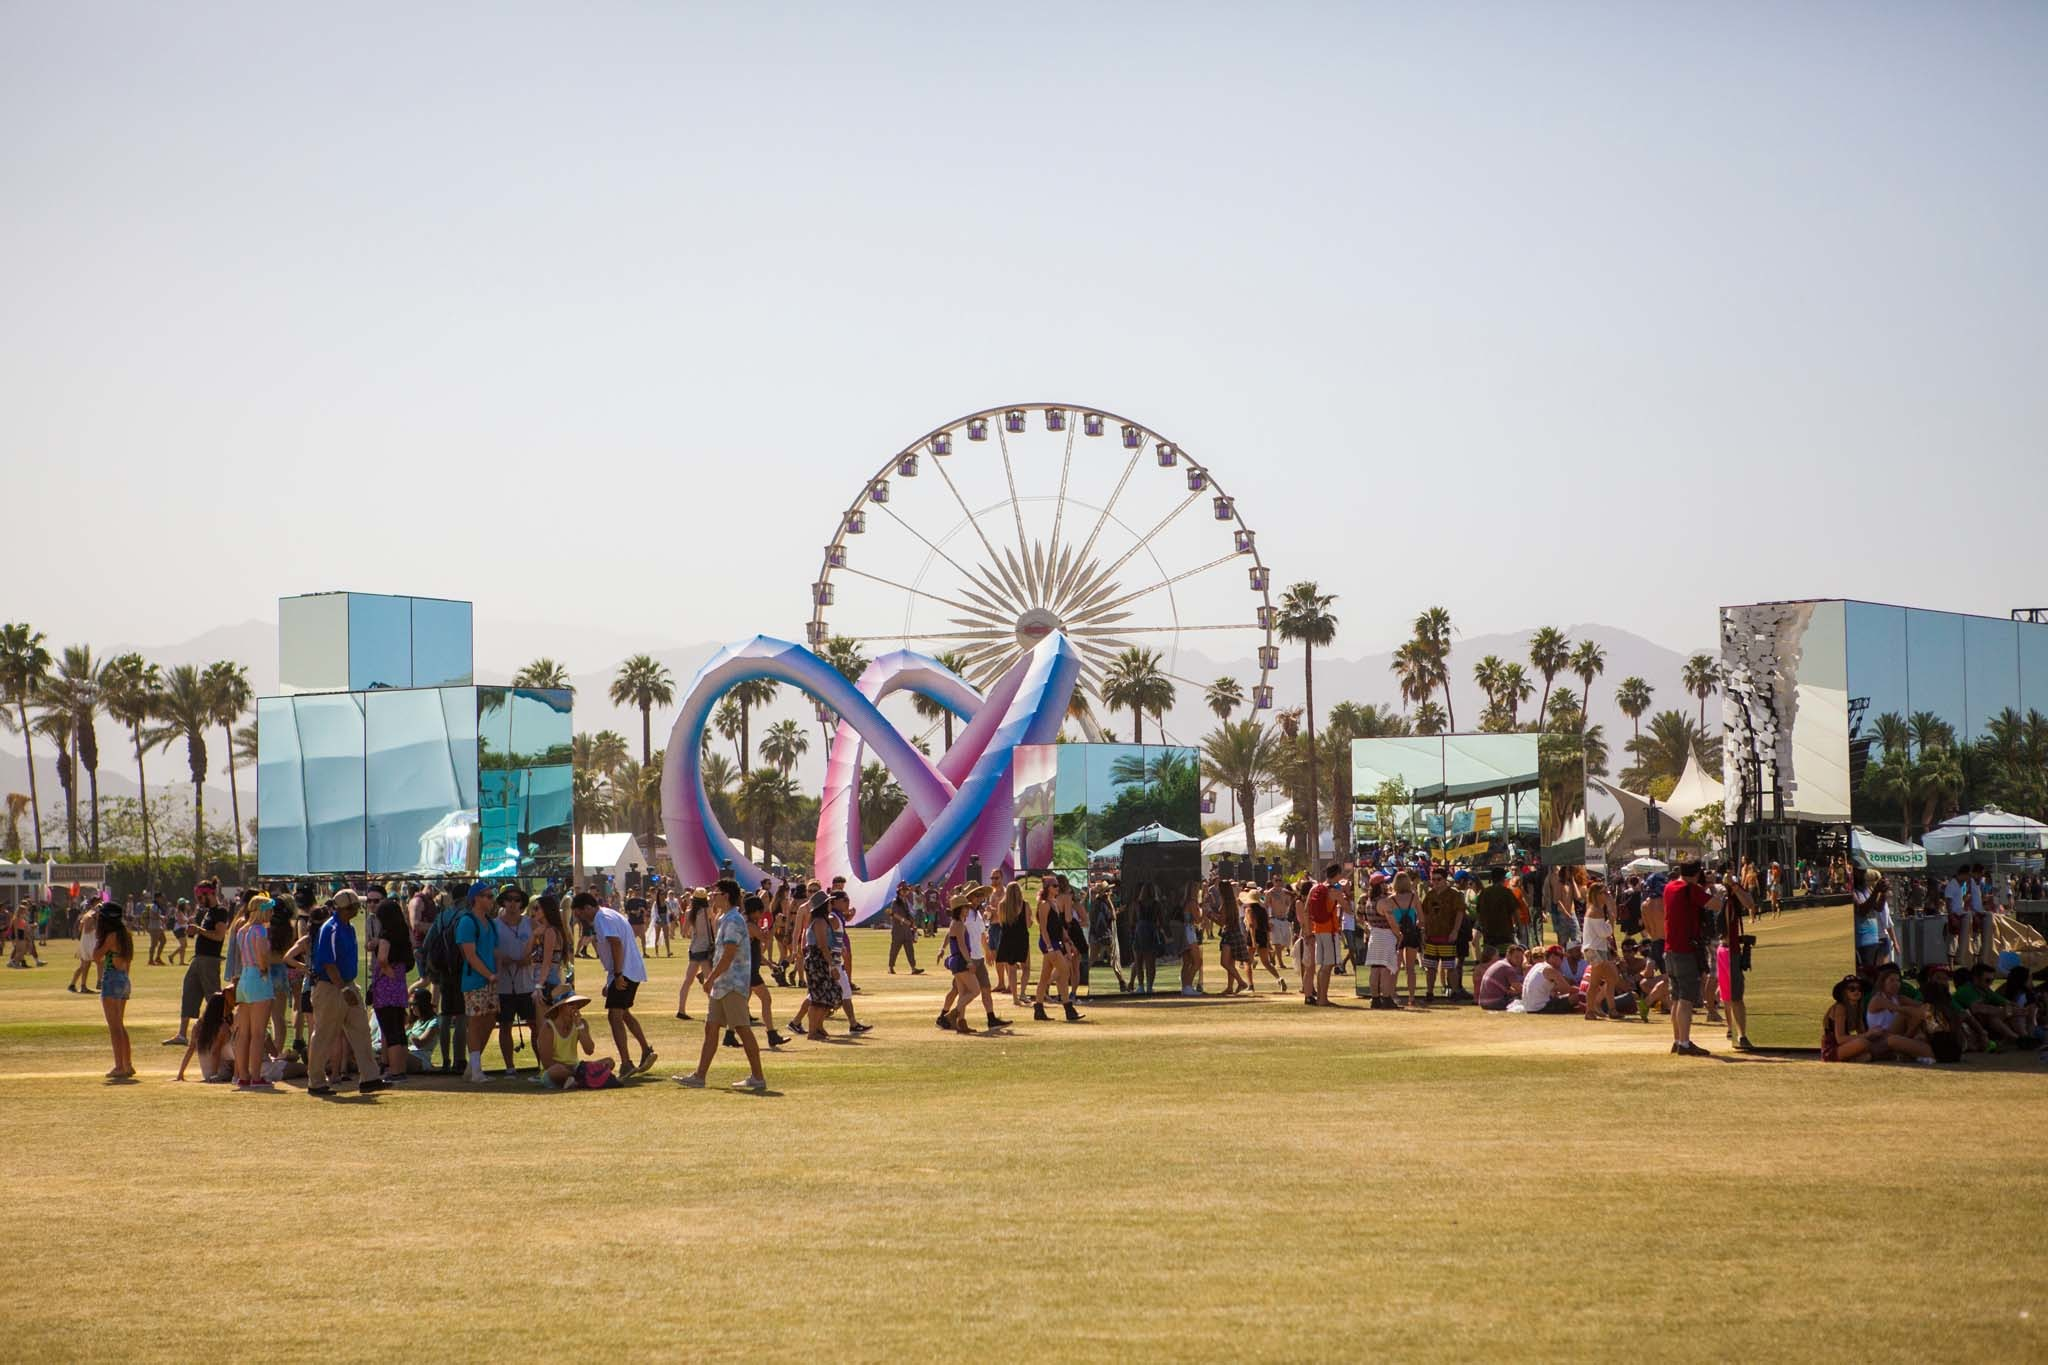 10 must-see acts at Coachella 2015